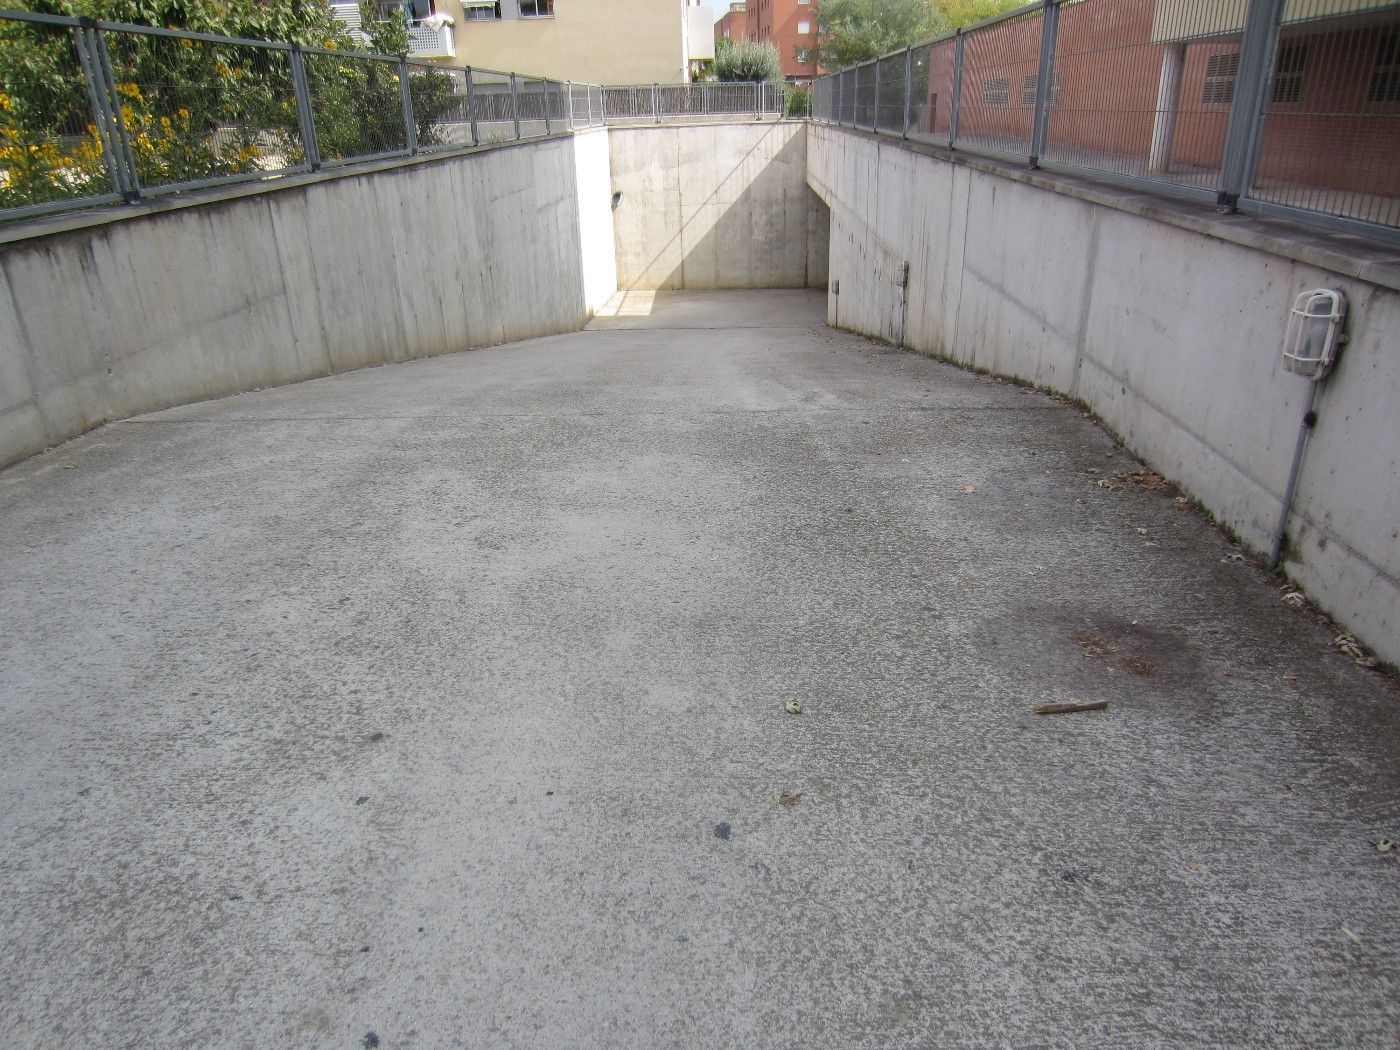 Car parking in Carrer carles riba, 2. Pàrking zona les comes-av. països catalans